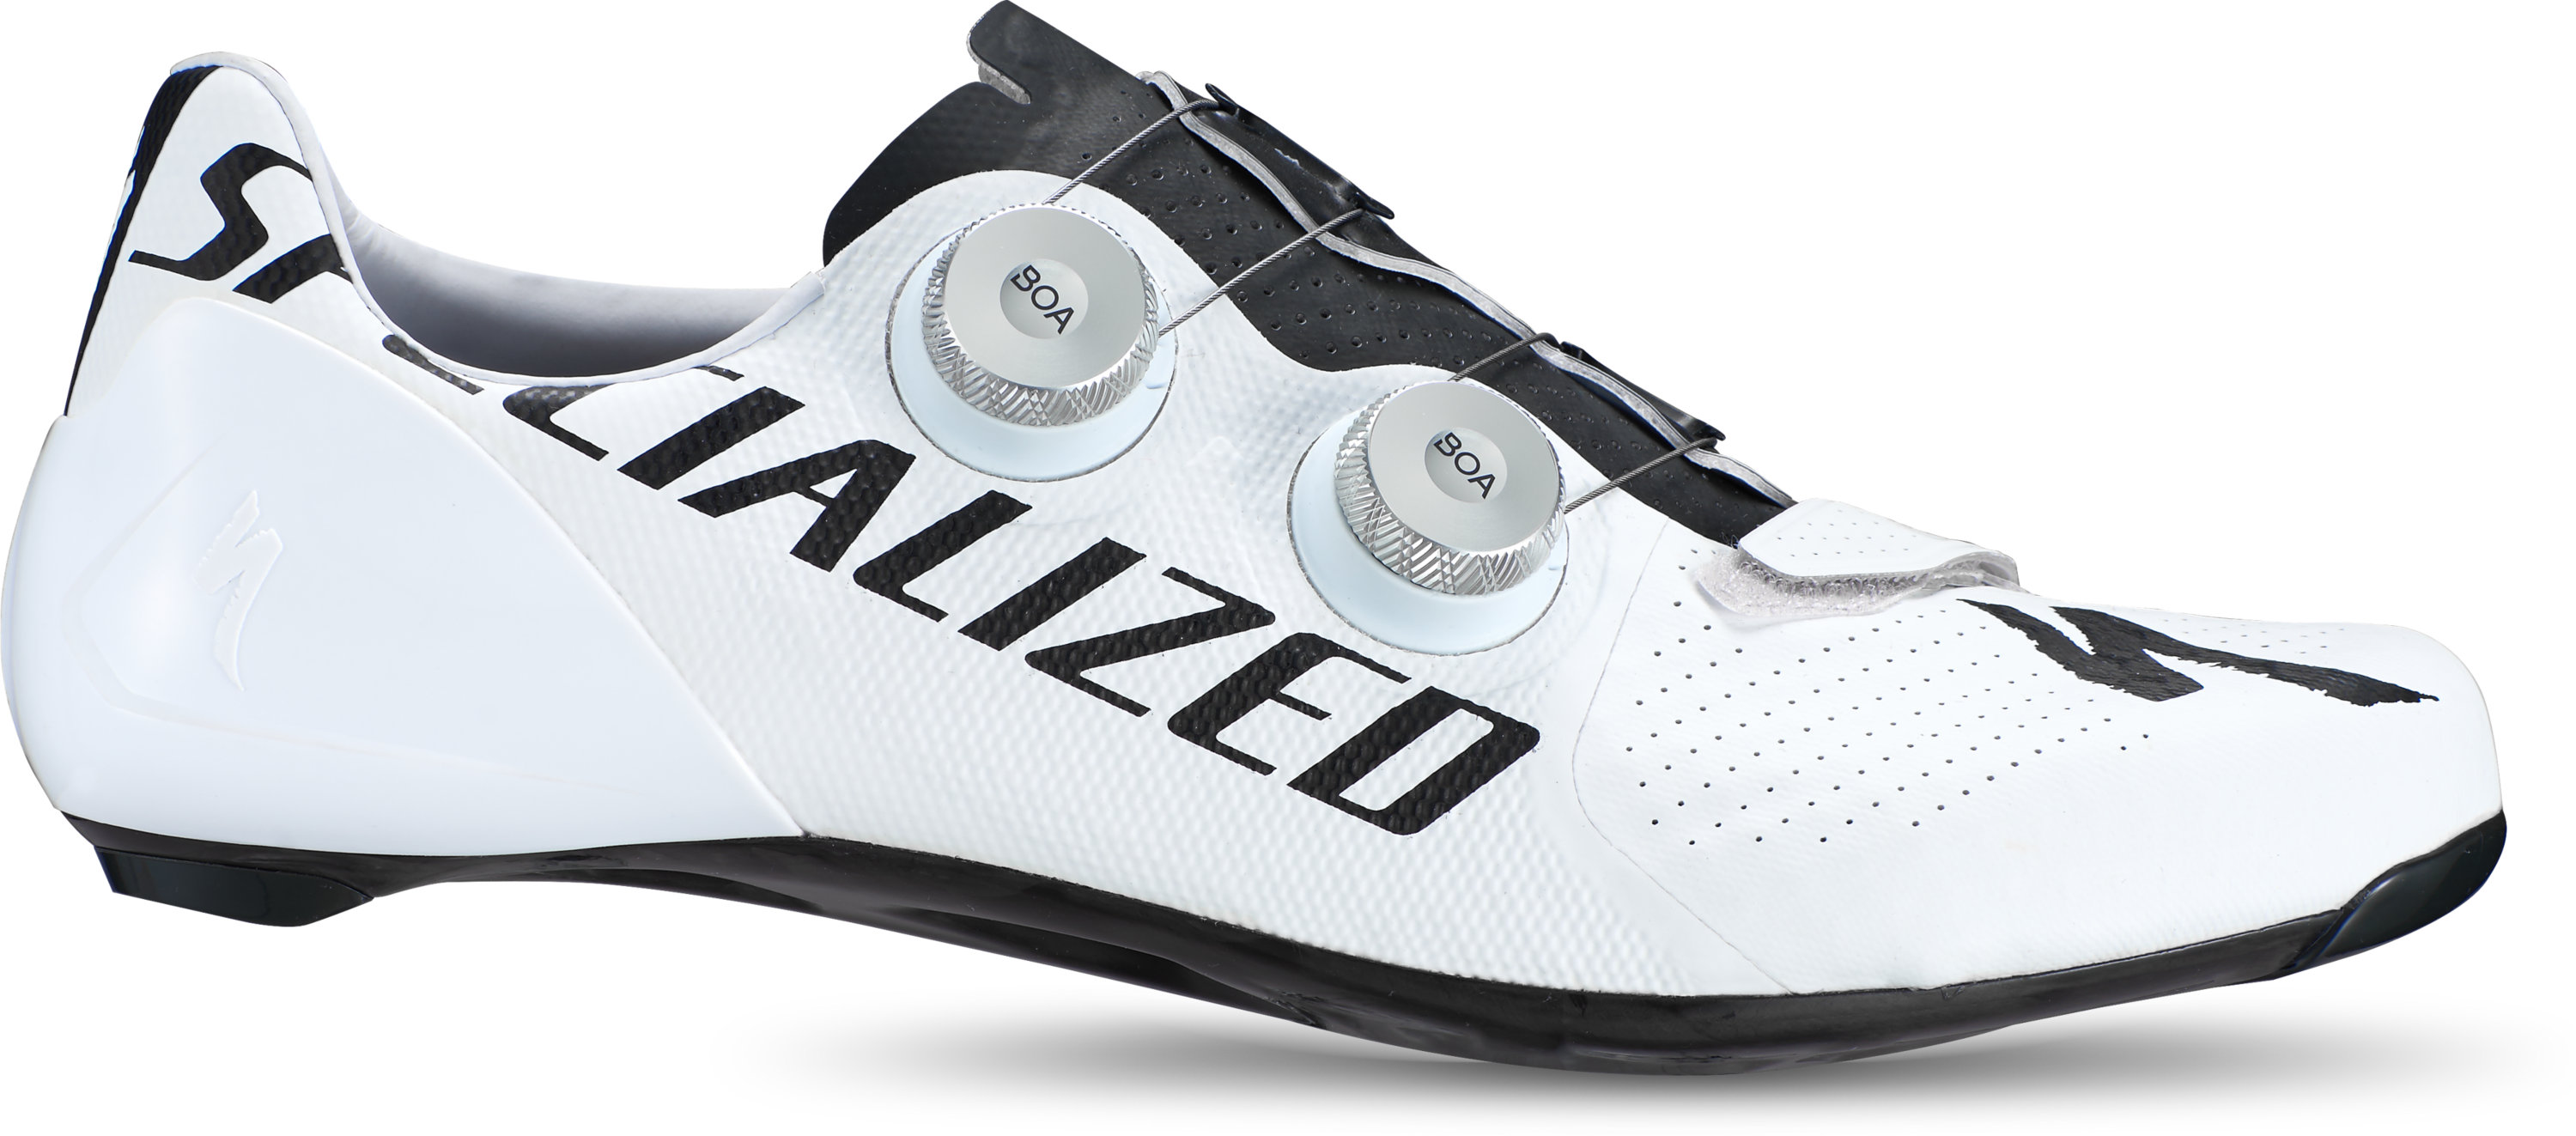 S-Works 7 Team Road Shoes | Specialized.com